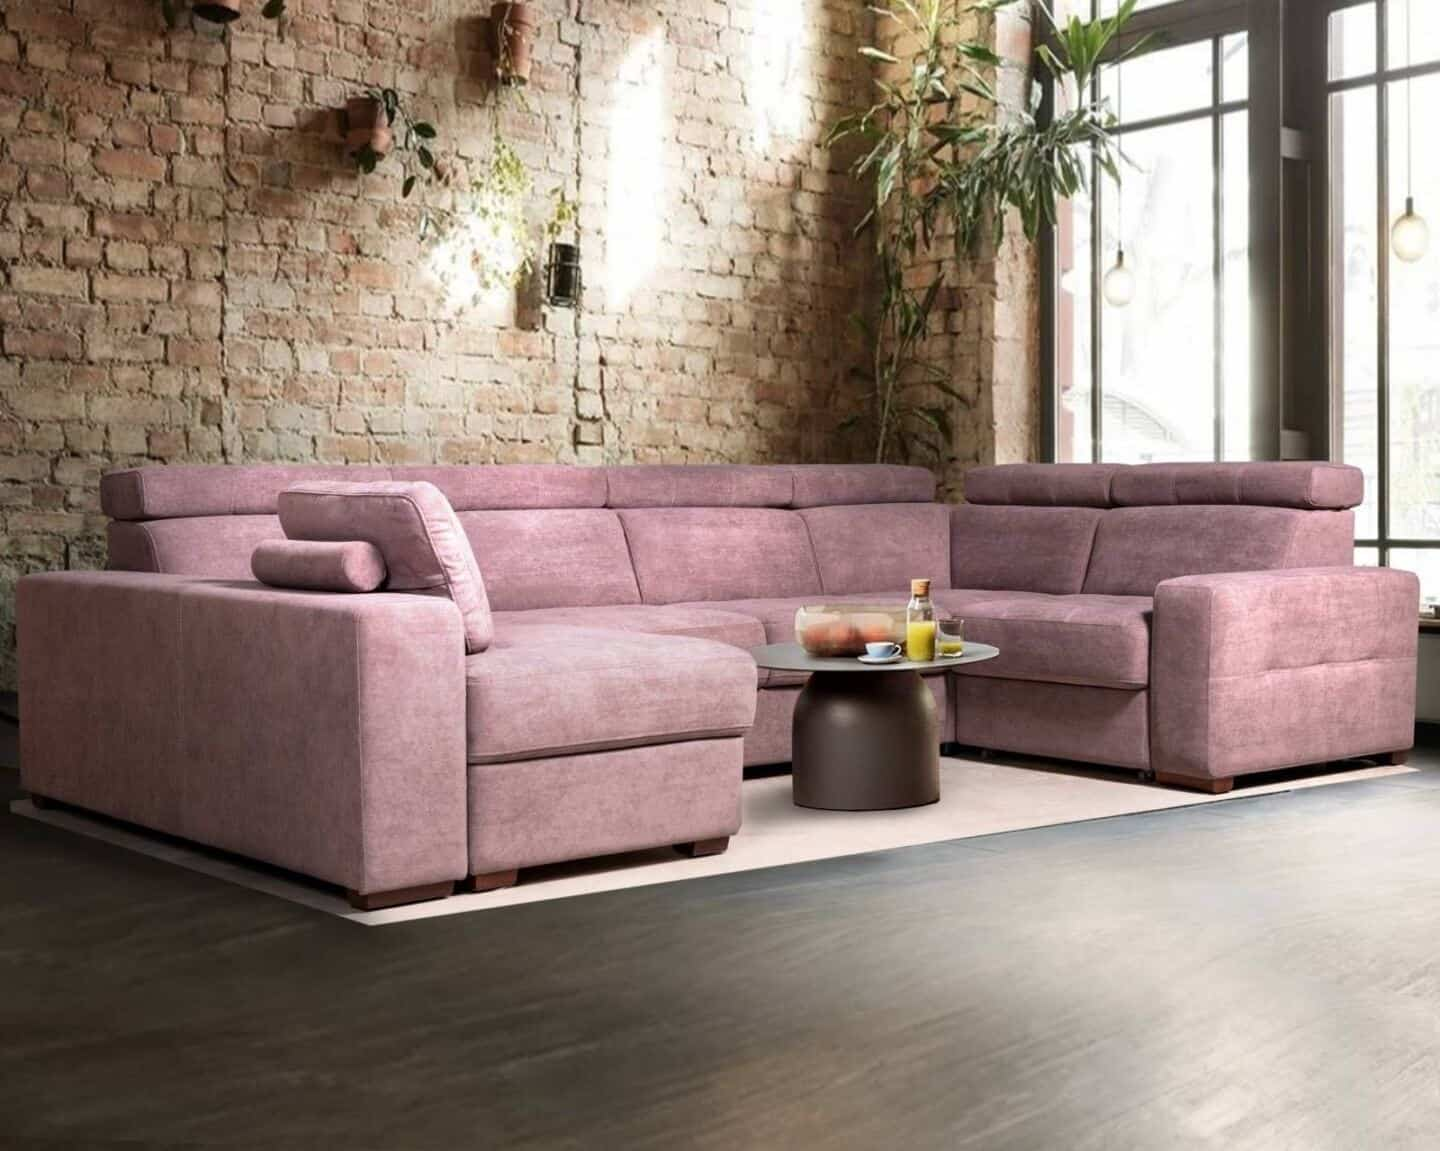 How to choose the perfect sofa for your lifestyle.  Modular pink sofa in anfront of an exposed brick wall with plants hung on the wall and a large window to the right.